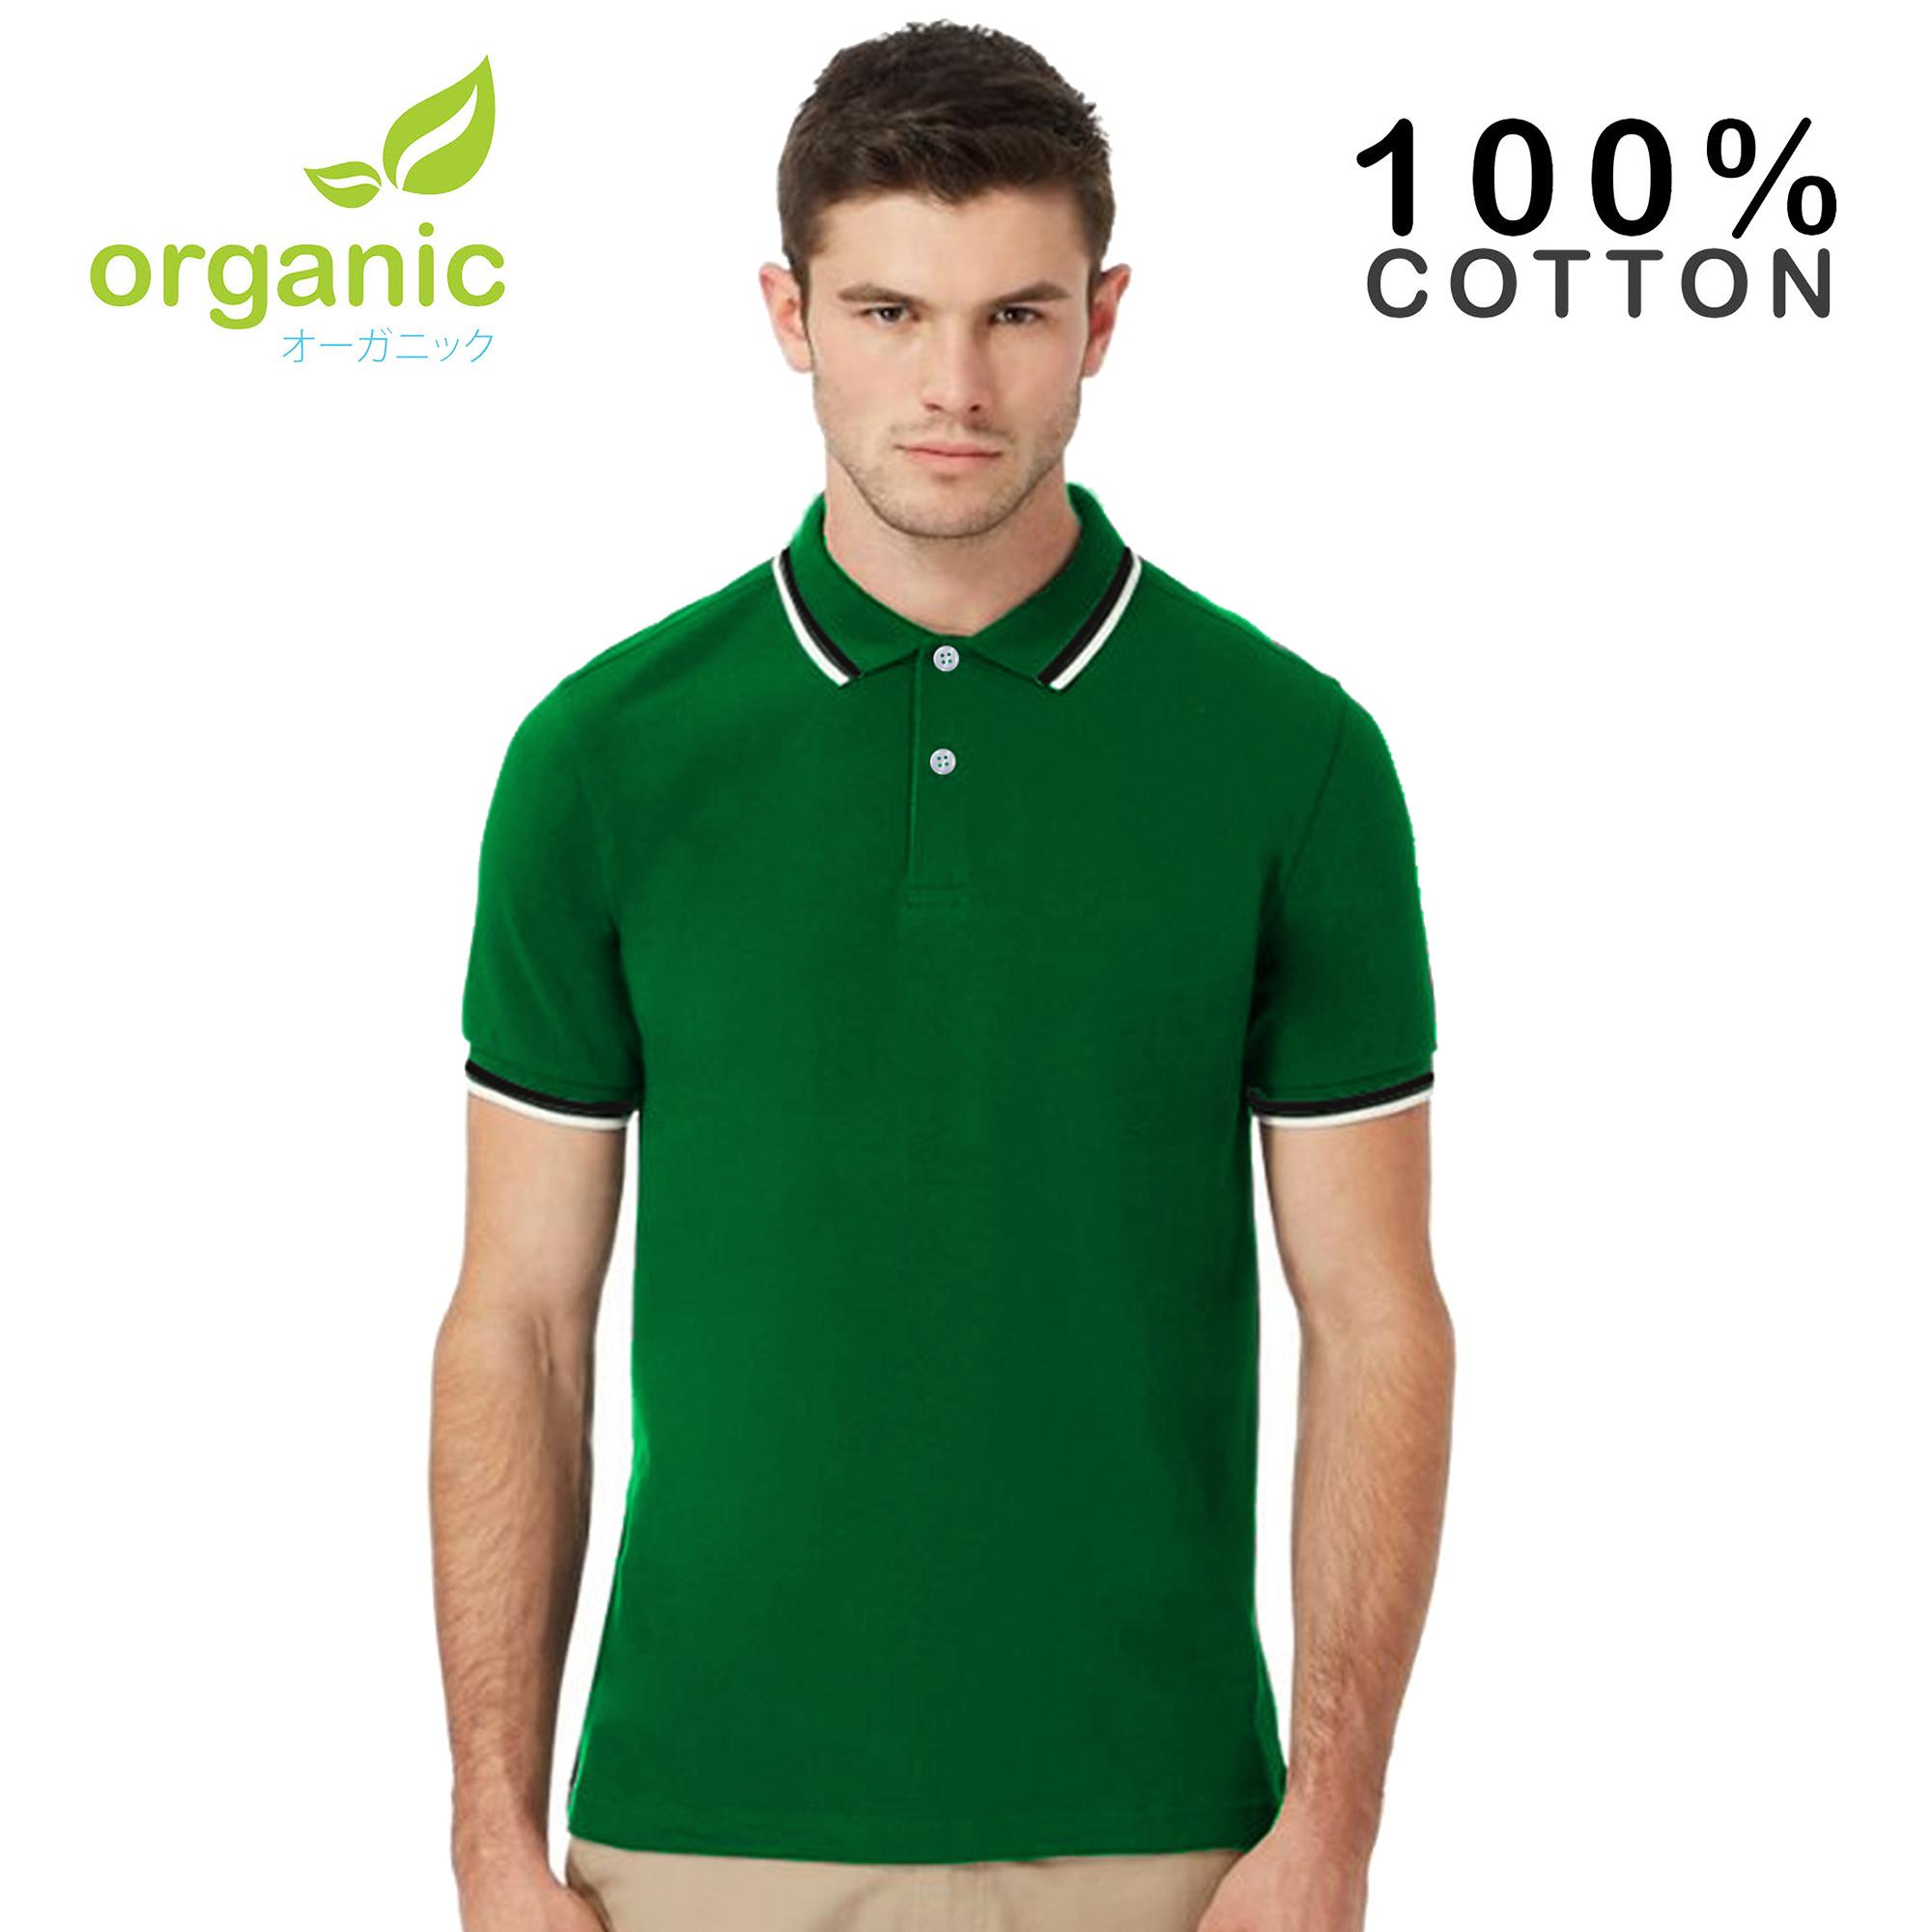 8051645c8 Organic Mens Tipped Pique Polo Shirt Tees t shirt tshirt shirts tshirts tee  tops top for